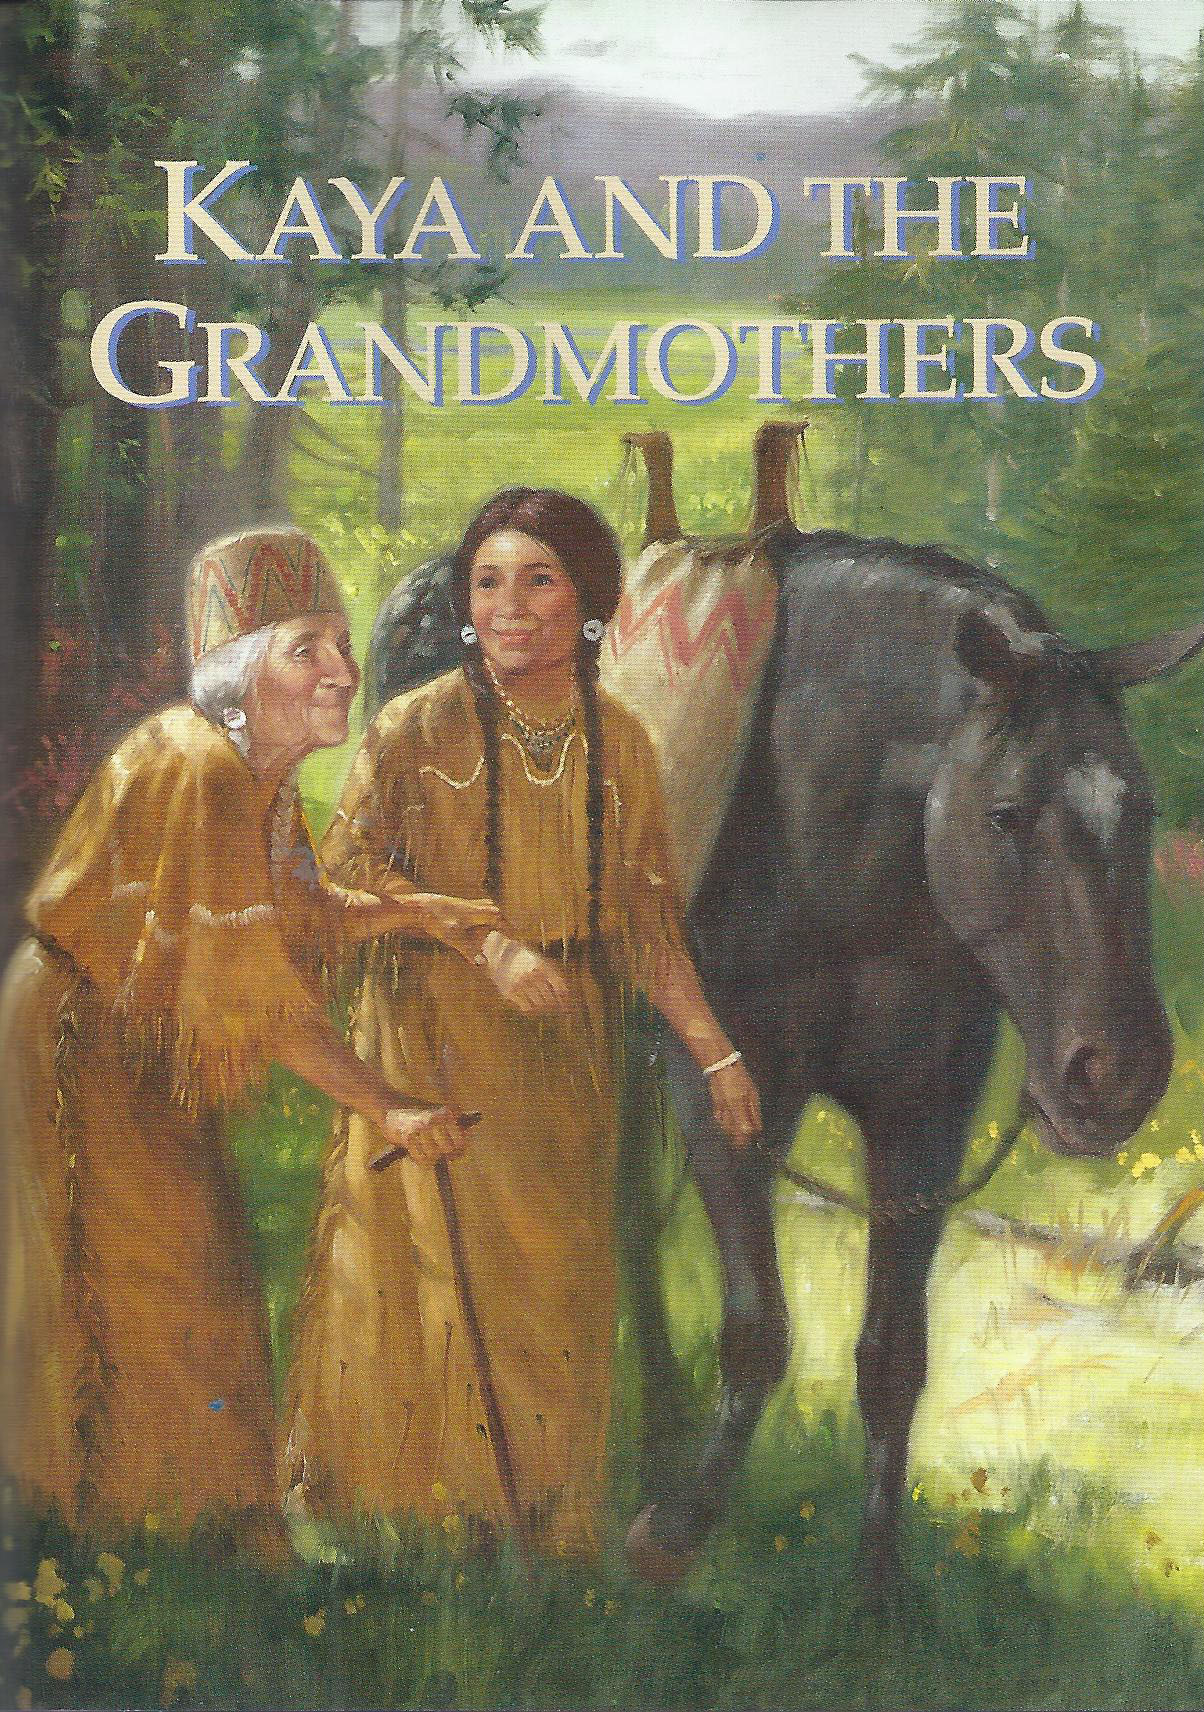 Kaya and the Grandmothers